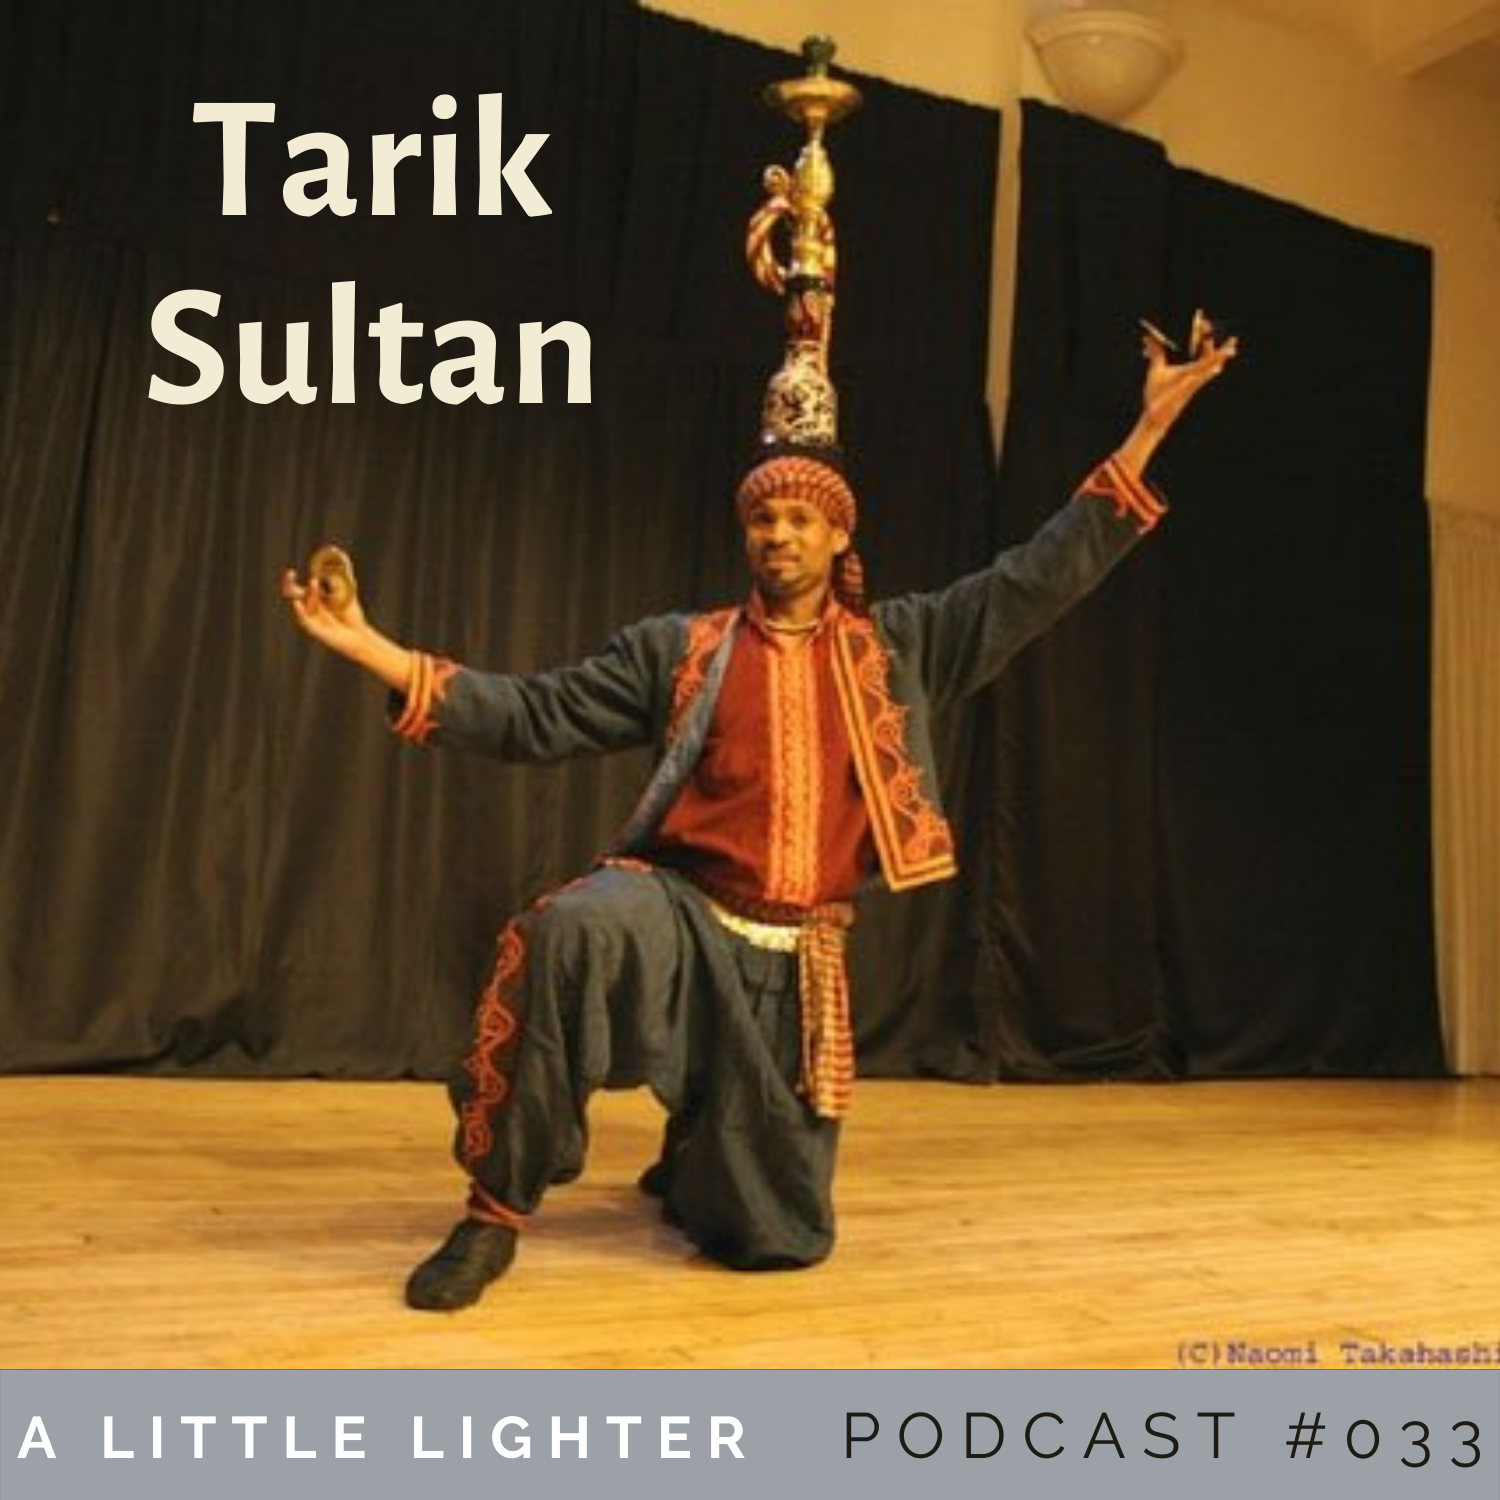 Belly Dance Podcast tarik sultan